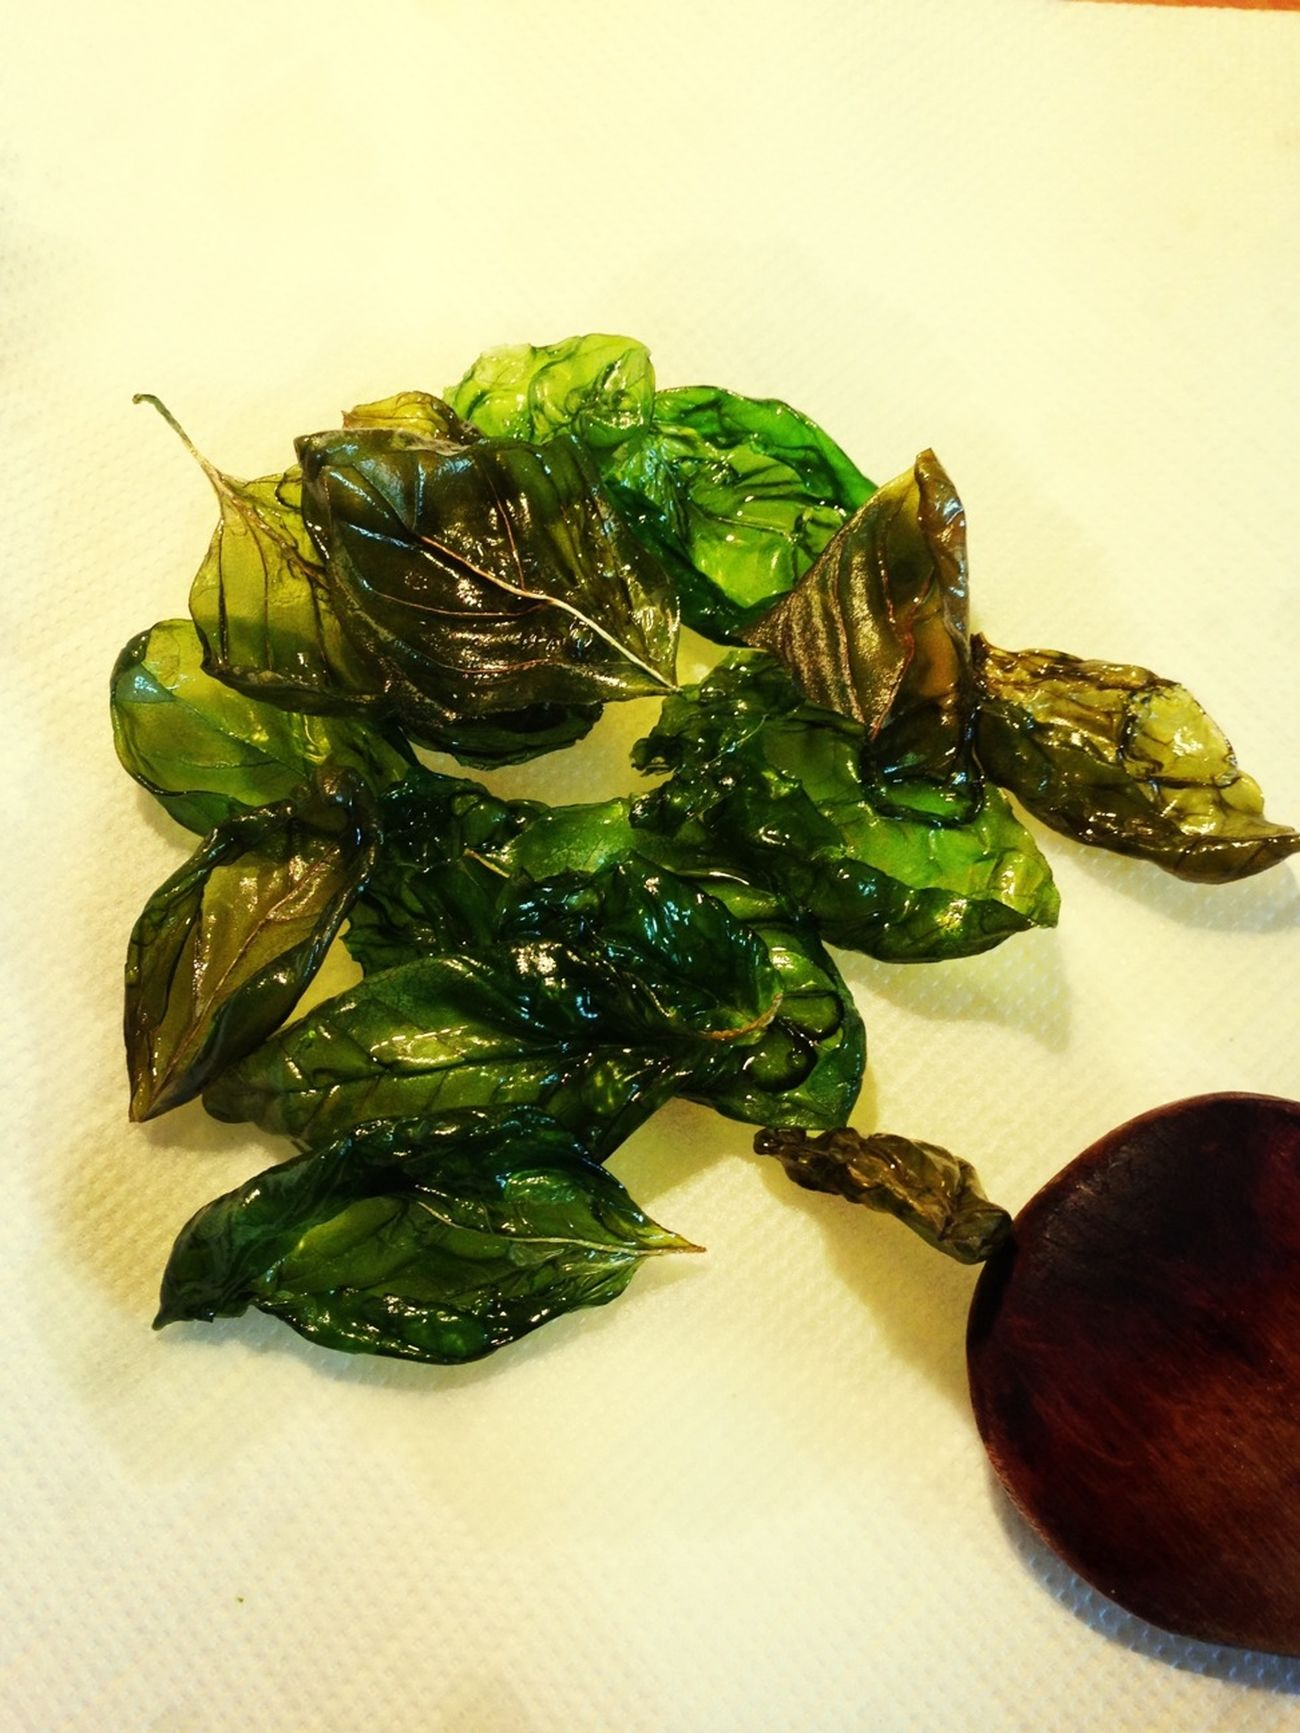 Fried Basilicum Leaves